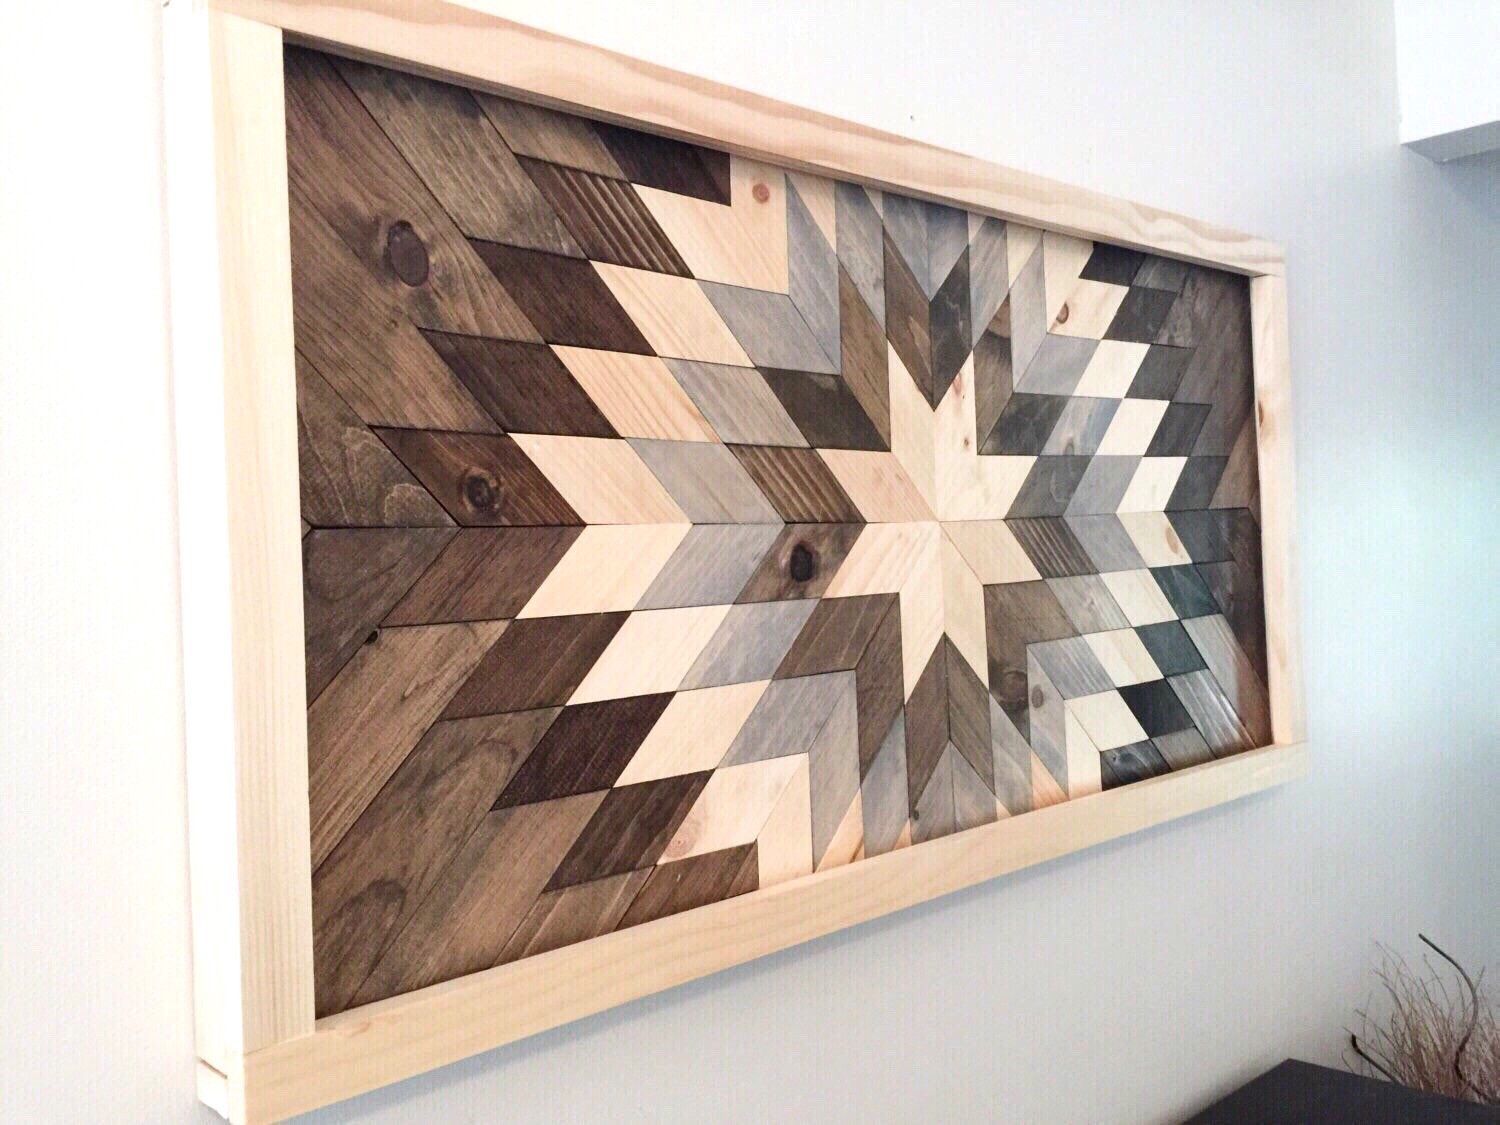 Charming This Is A Handmade Wooden Wall Mosaic Made From Upcycled Wood. Each Piece  Is Hand Cut And Arranged Into This Beautiful Sunburst To Be Enjoyed For  Many Years ...